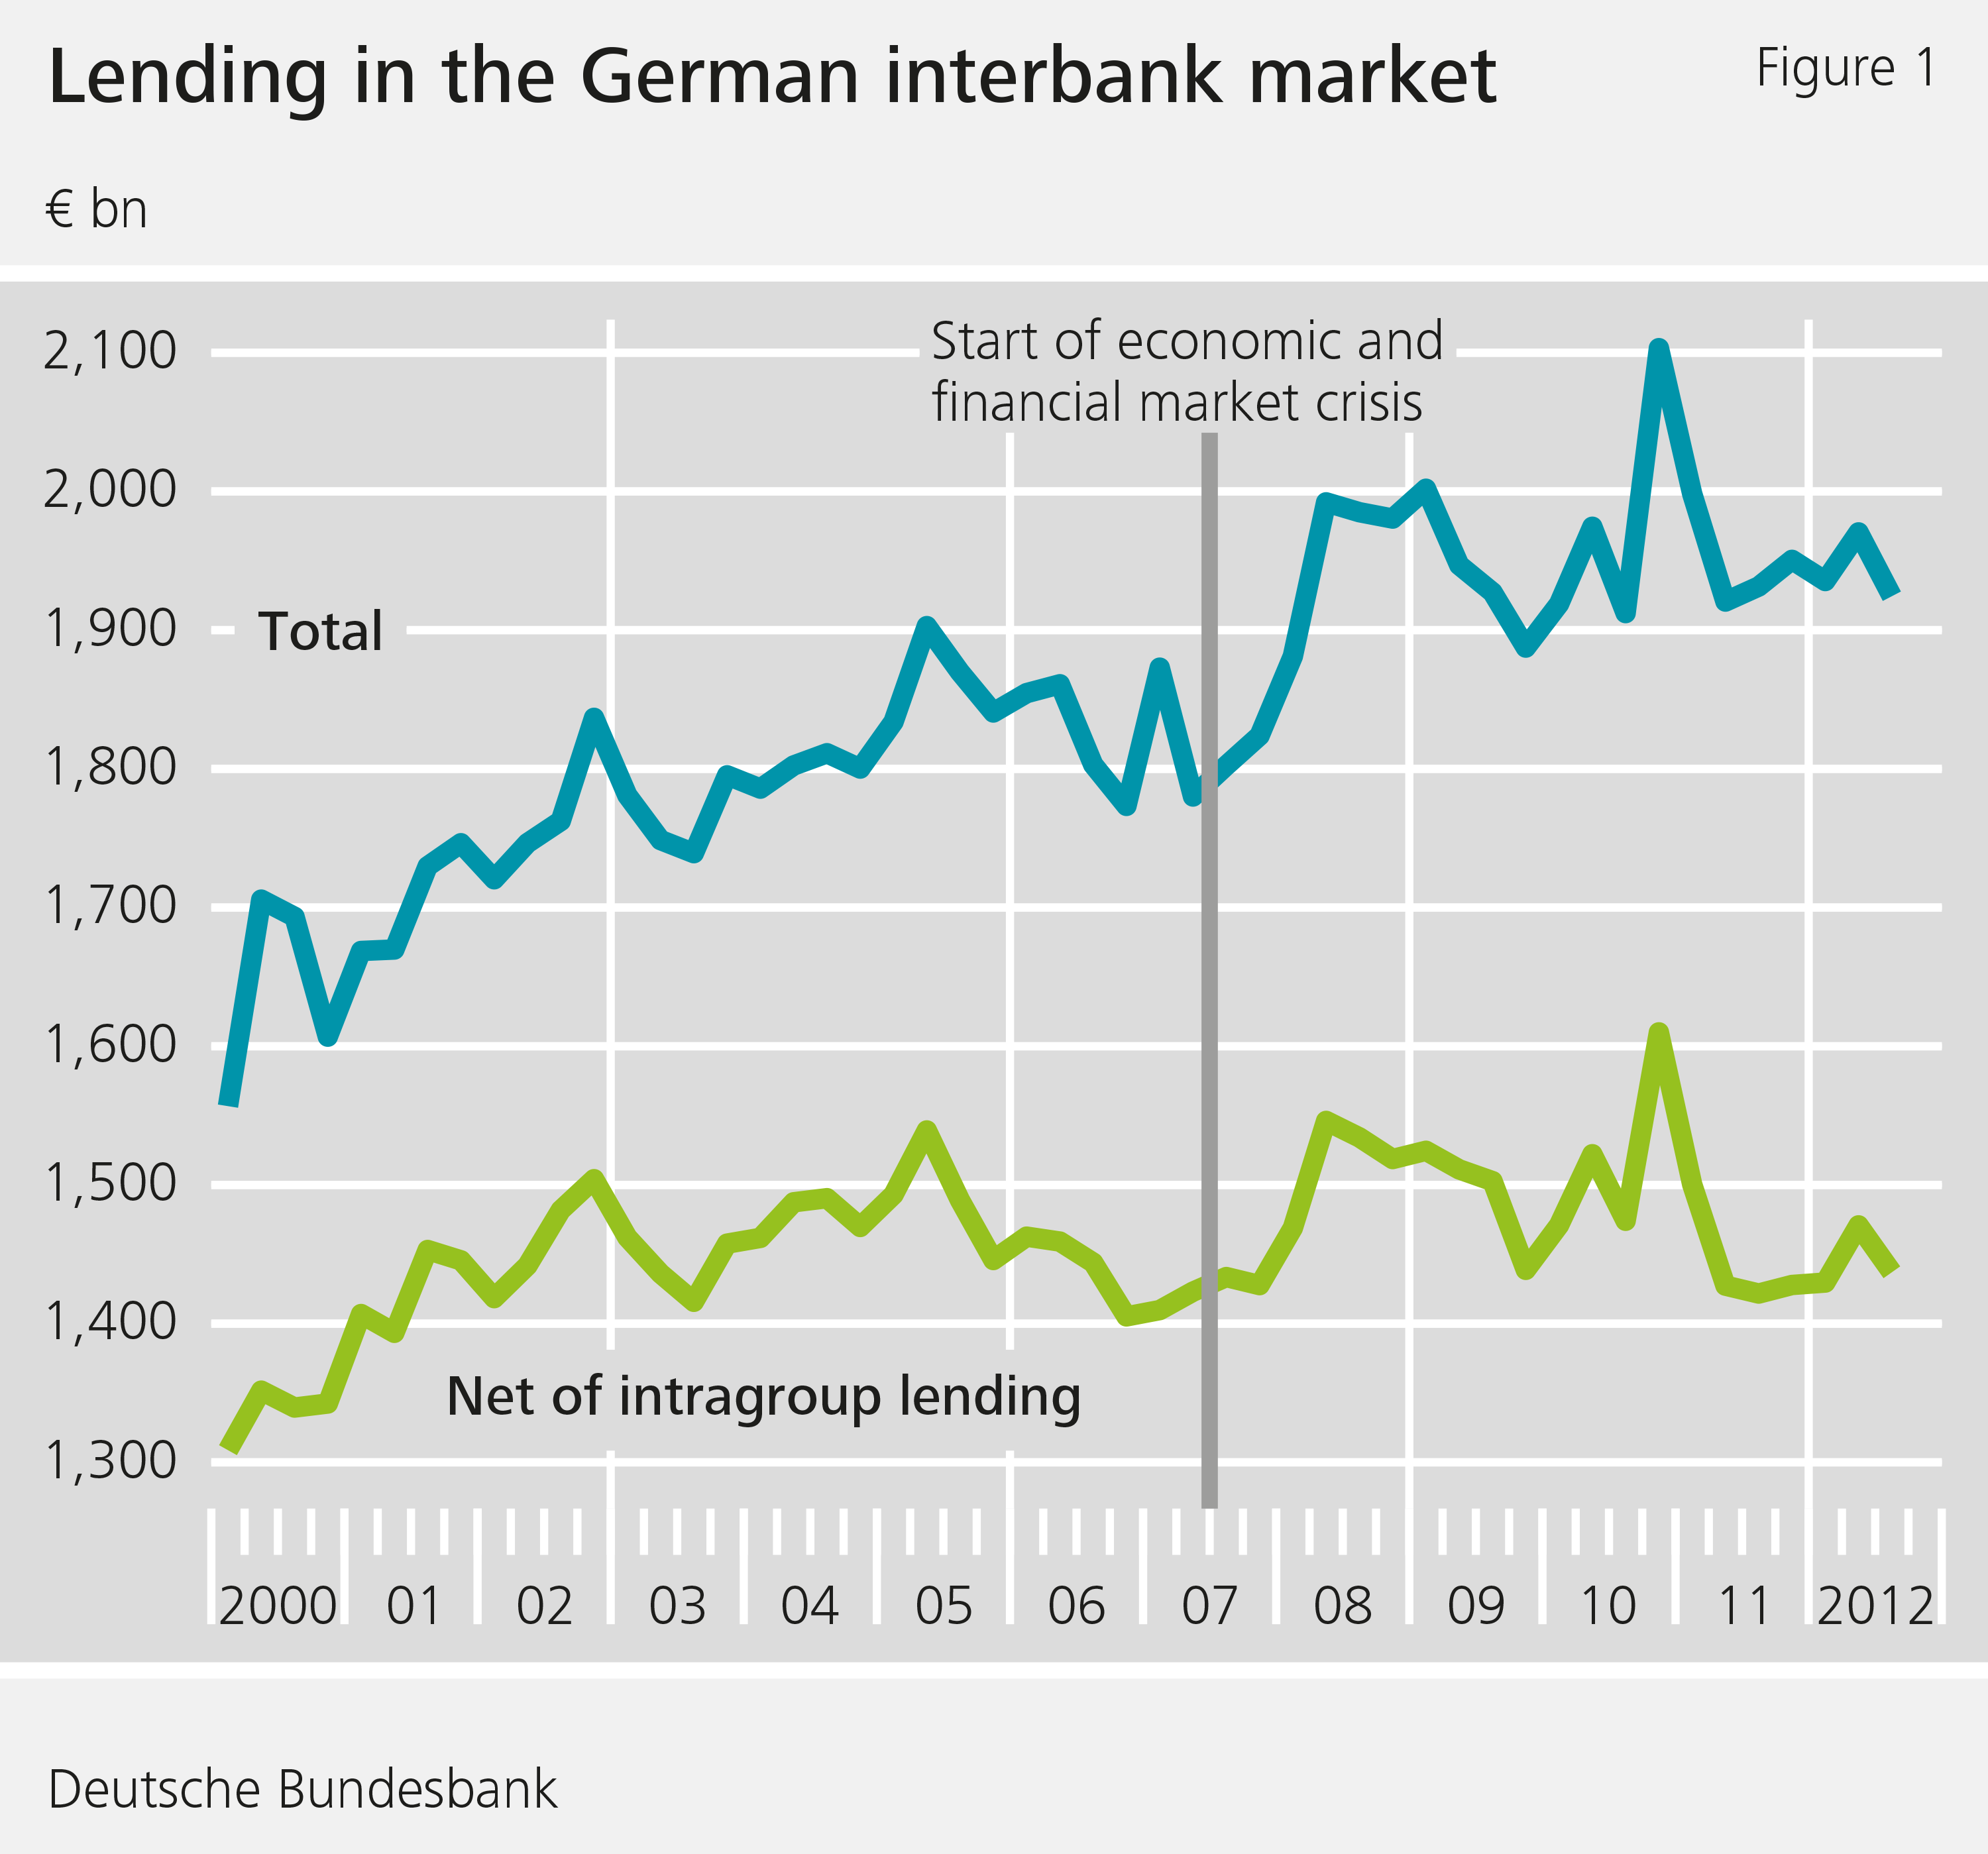 Lending in the German interbank market